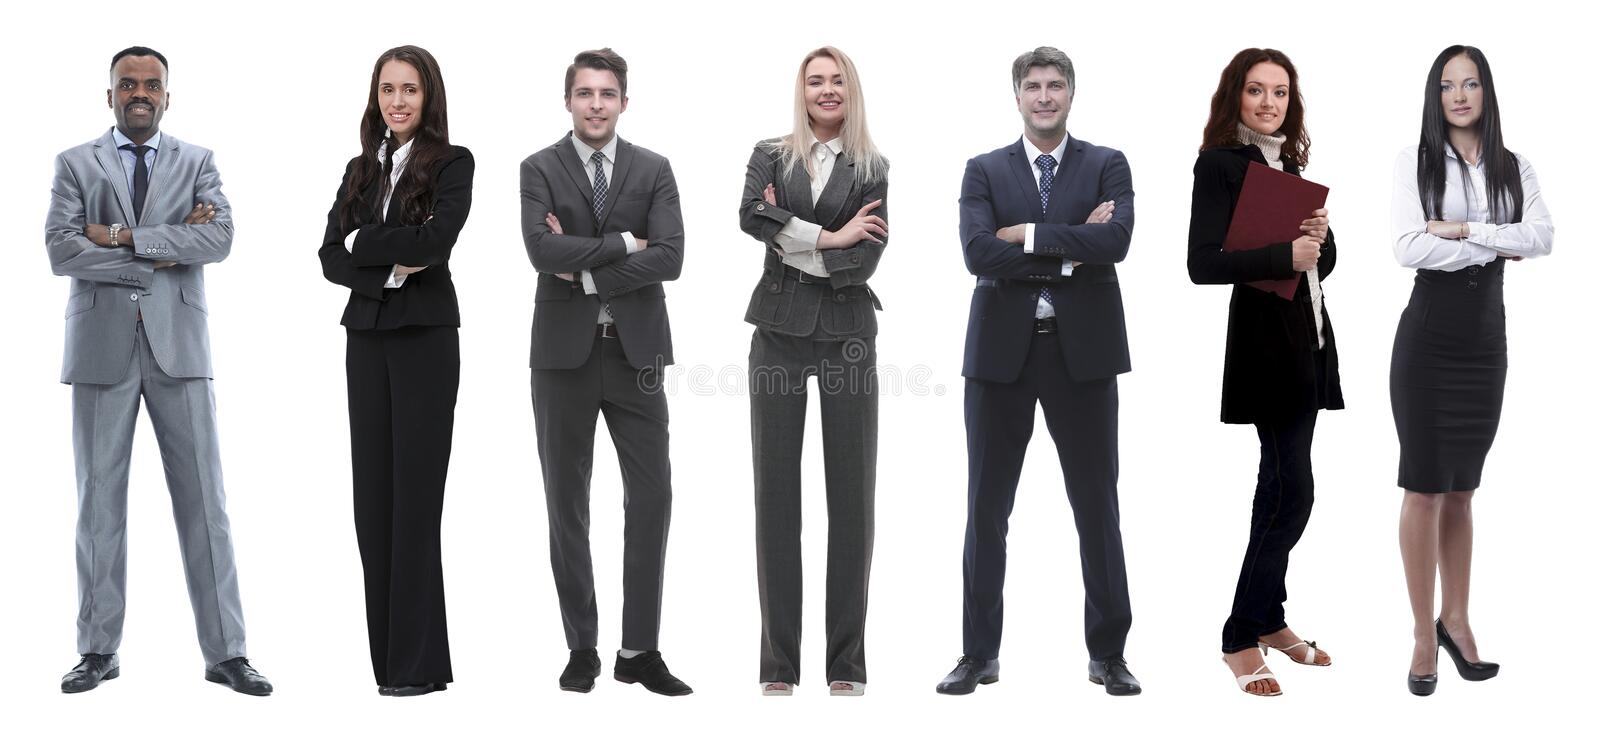 Collage of mixed age group of focused business professionals. Group of smiling business people. Businessman and women team stock images